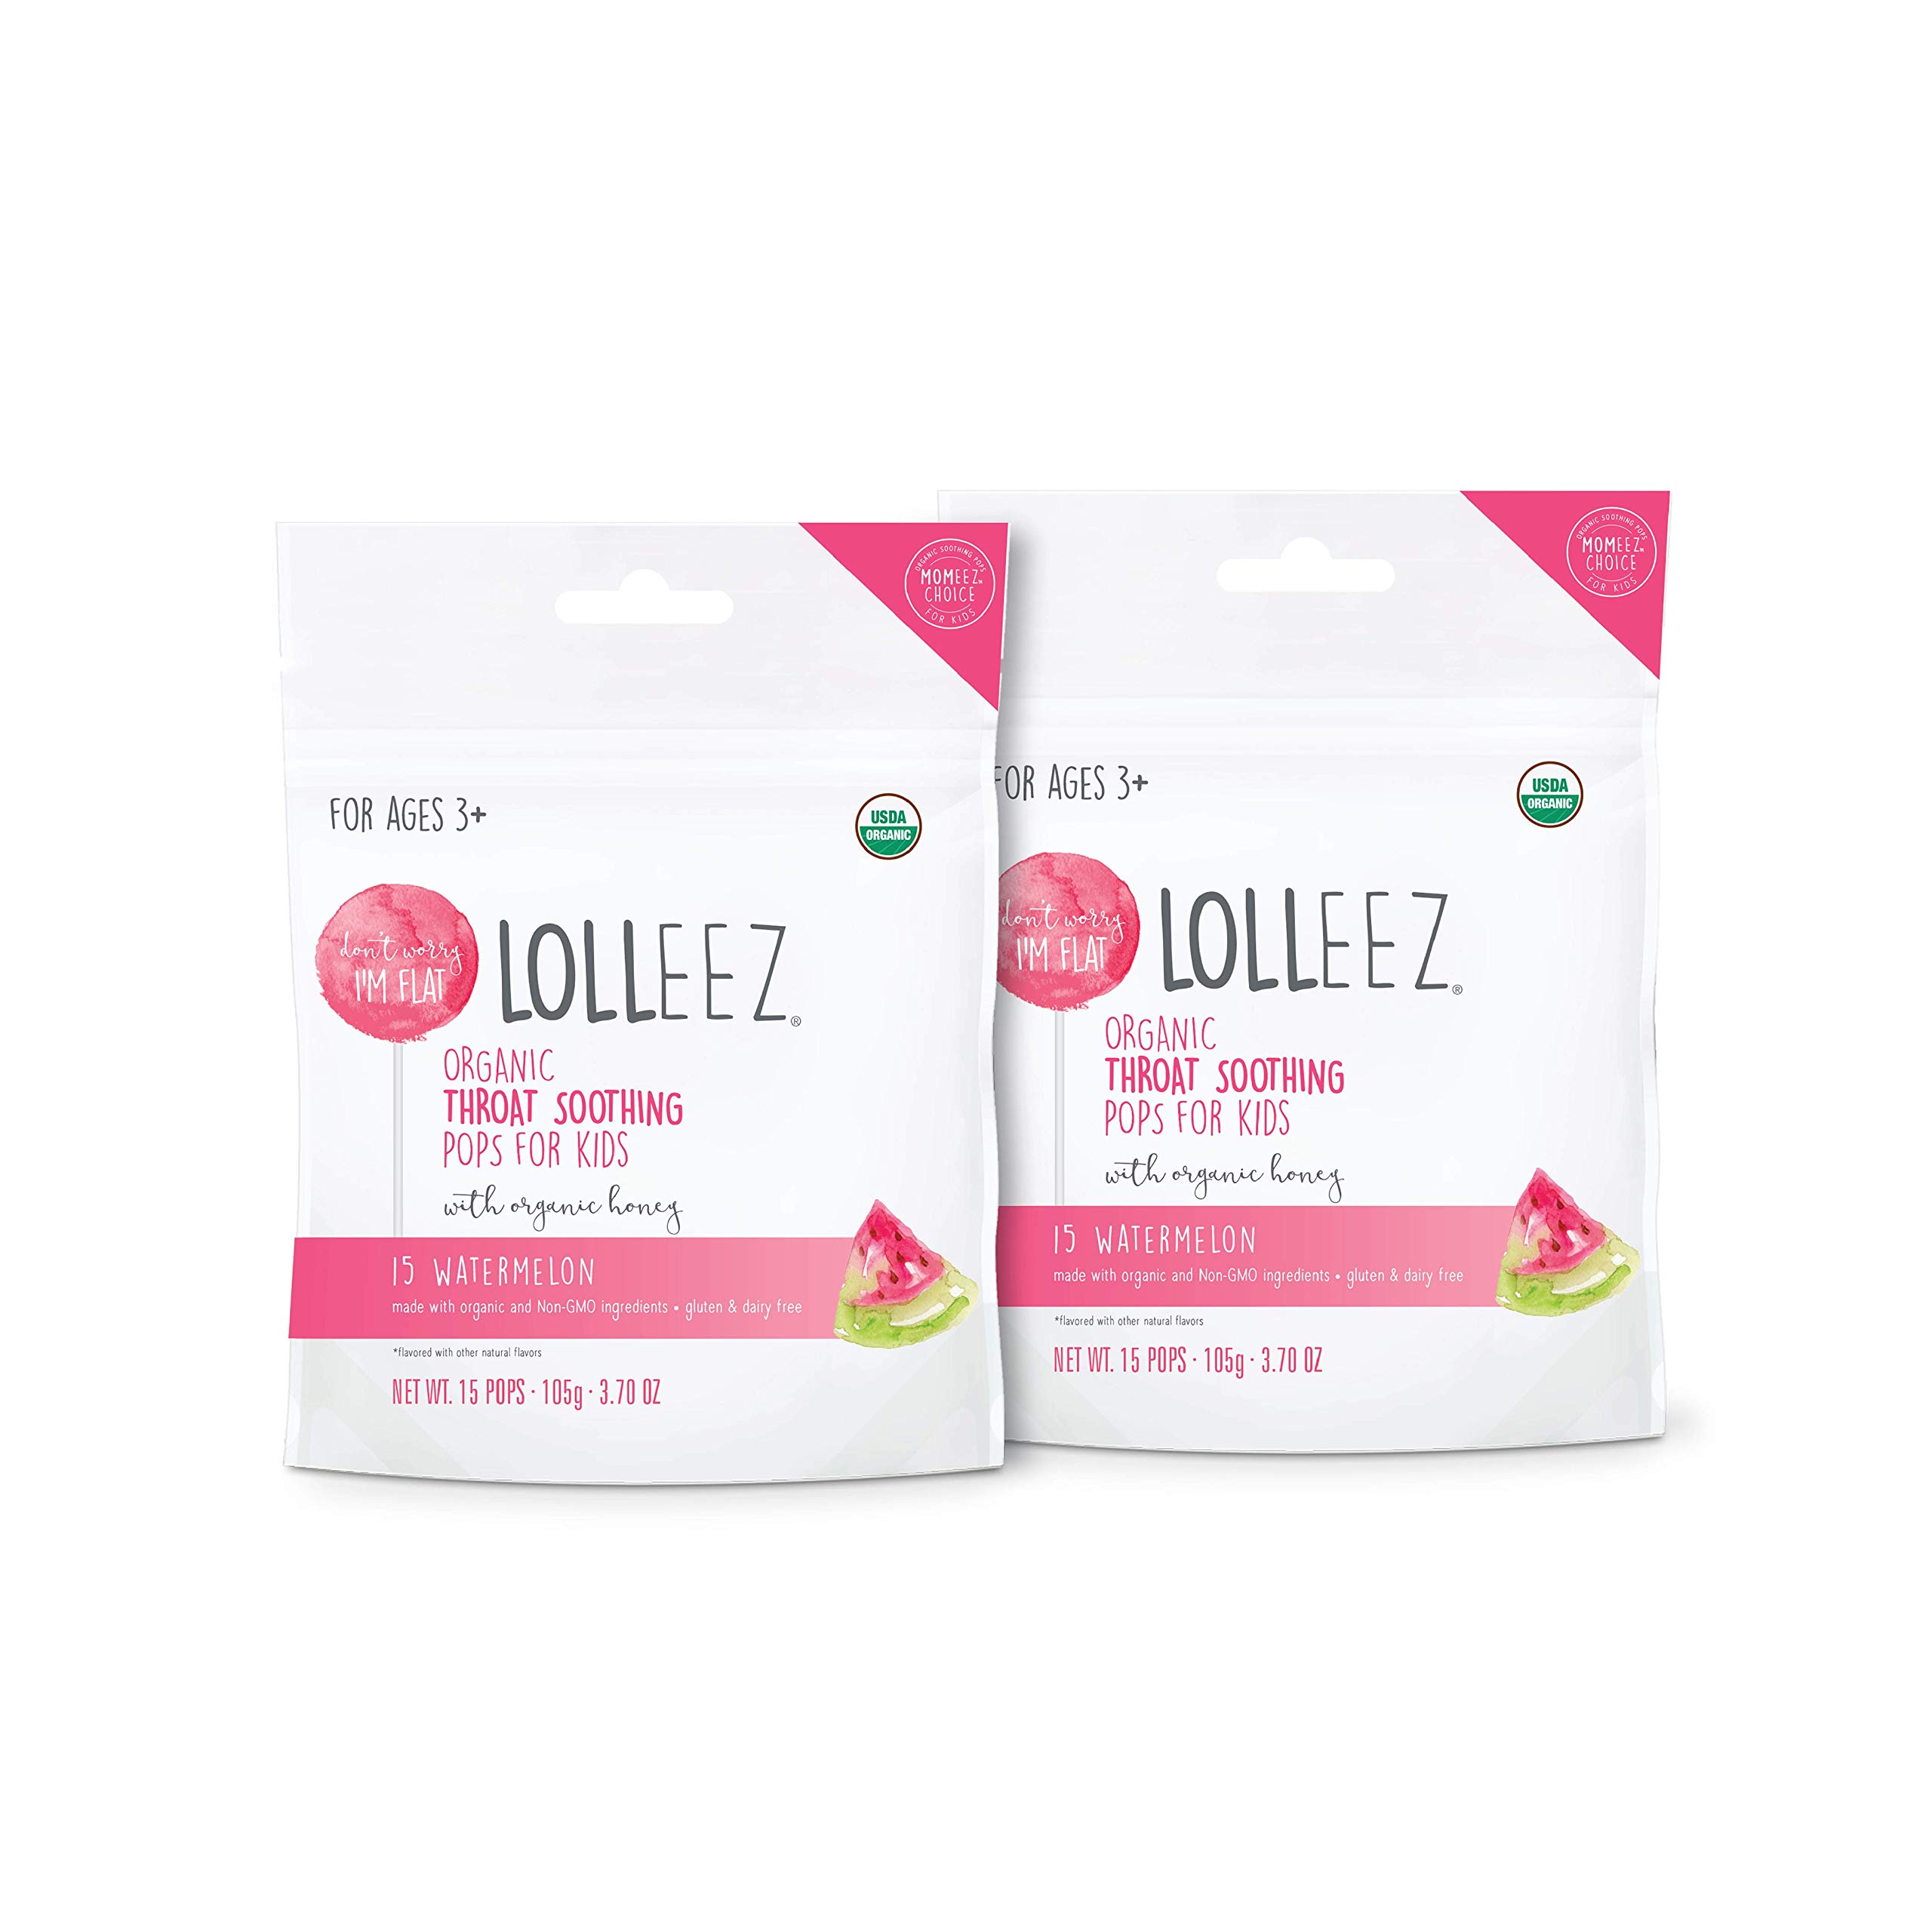 Lolleez Organic Throat Soothing Pops for Kids with Organic Honey - 2pk Watermelon